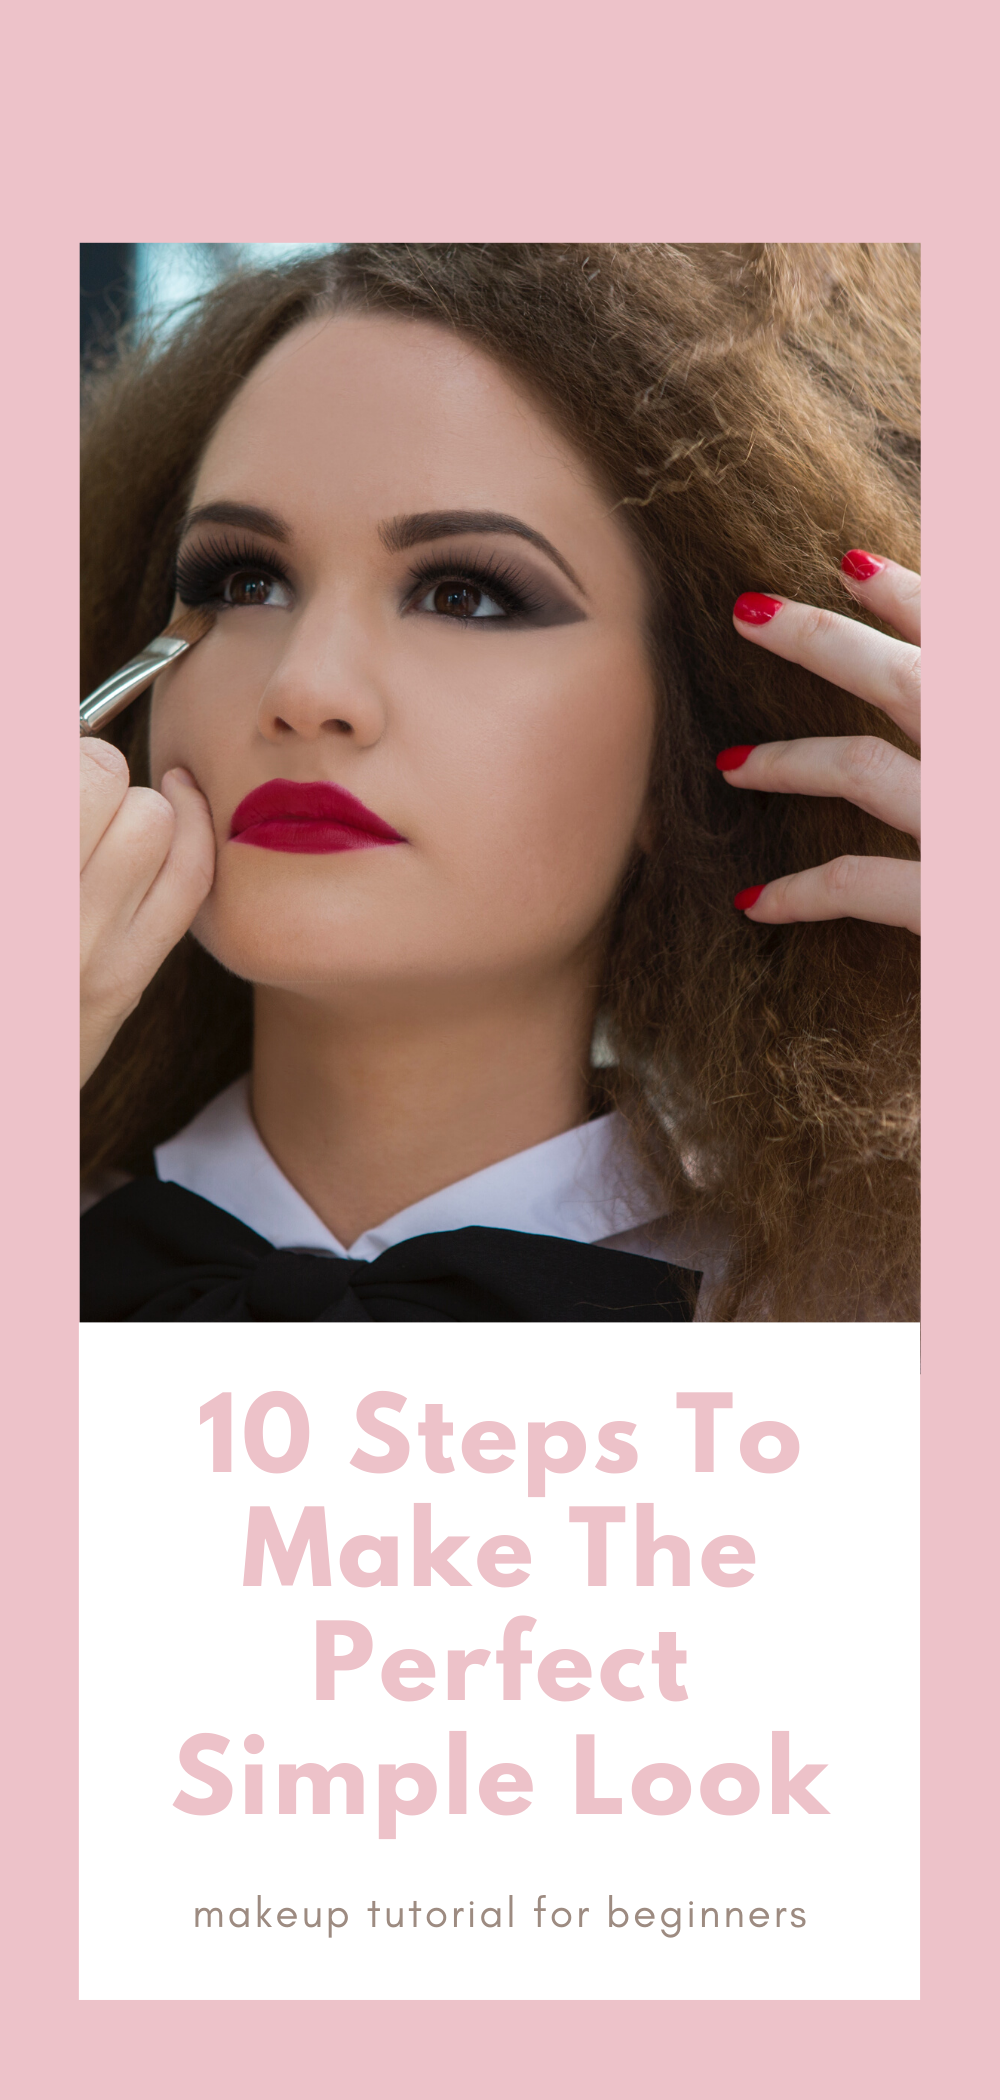 How to apply basic makeup tutorial beginners Get free